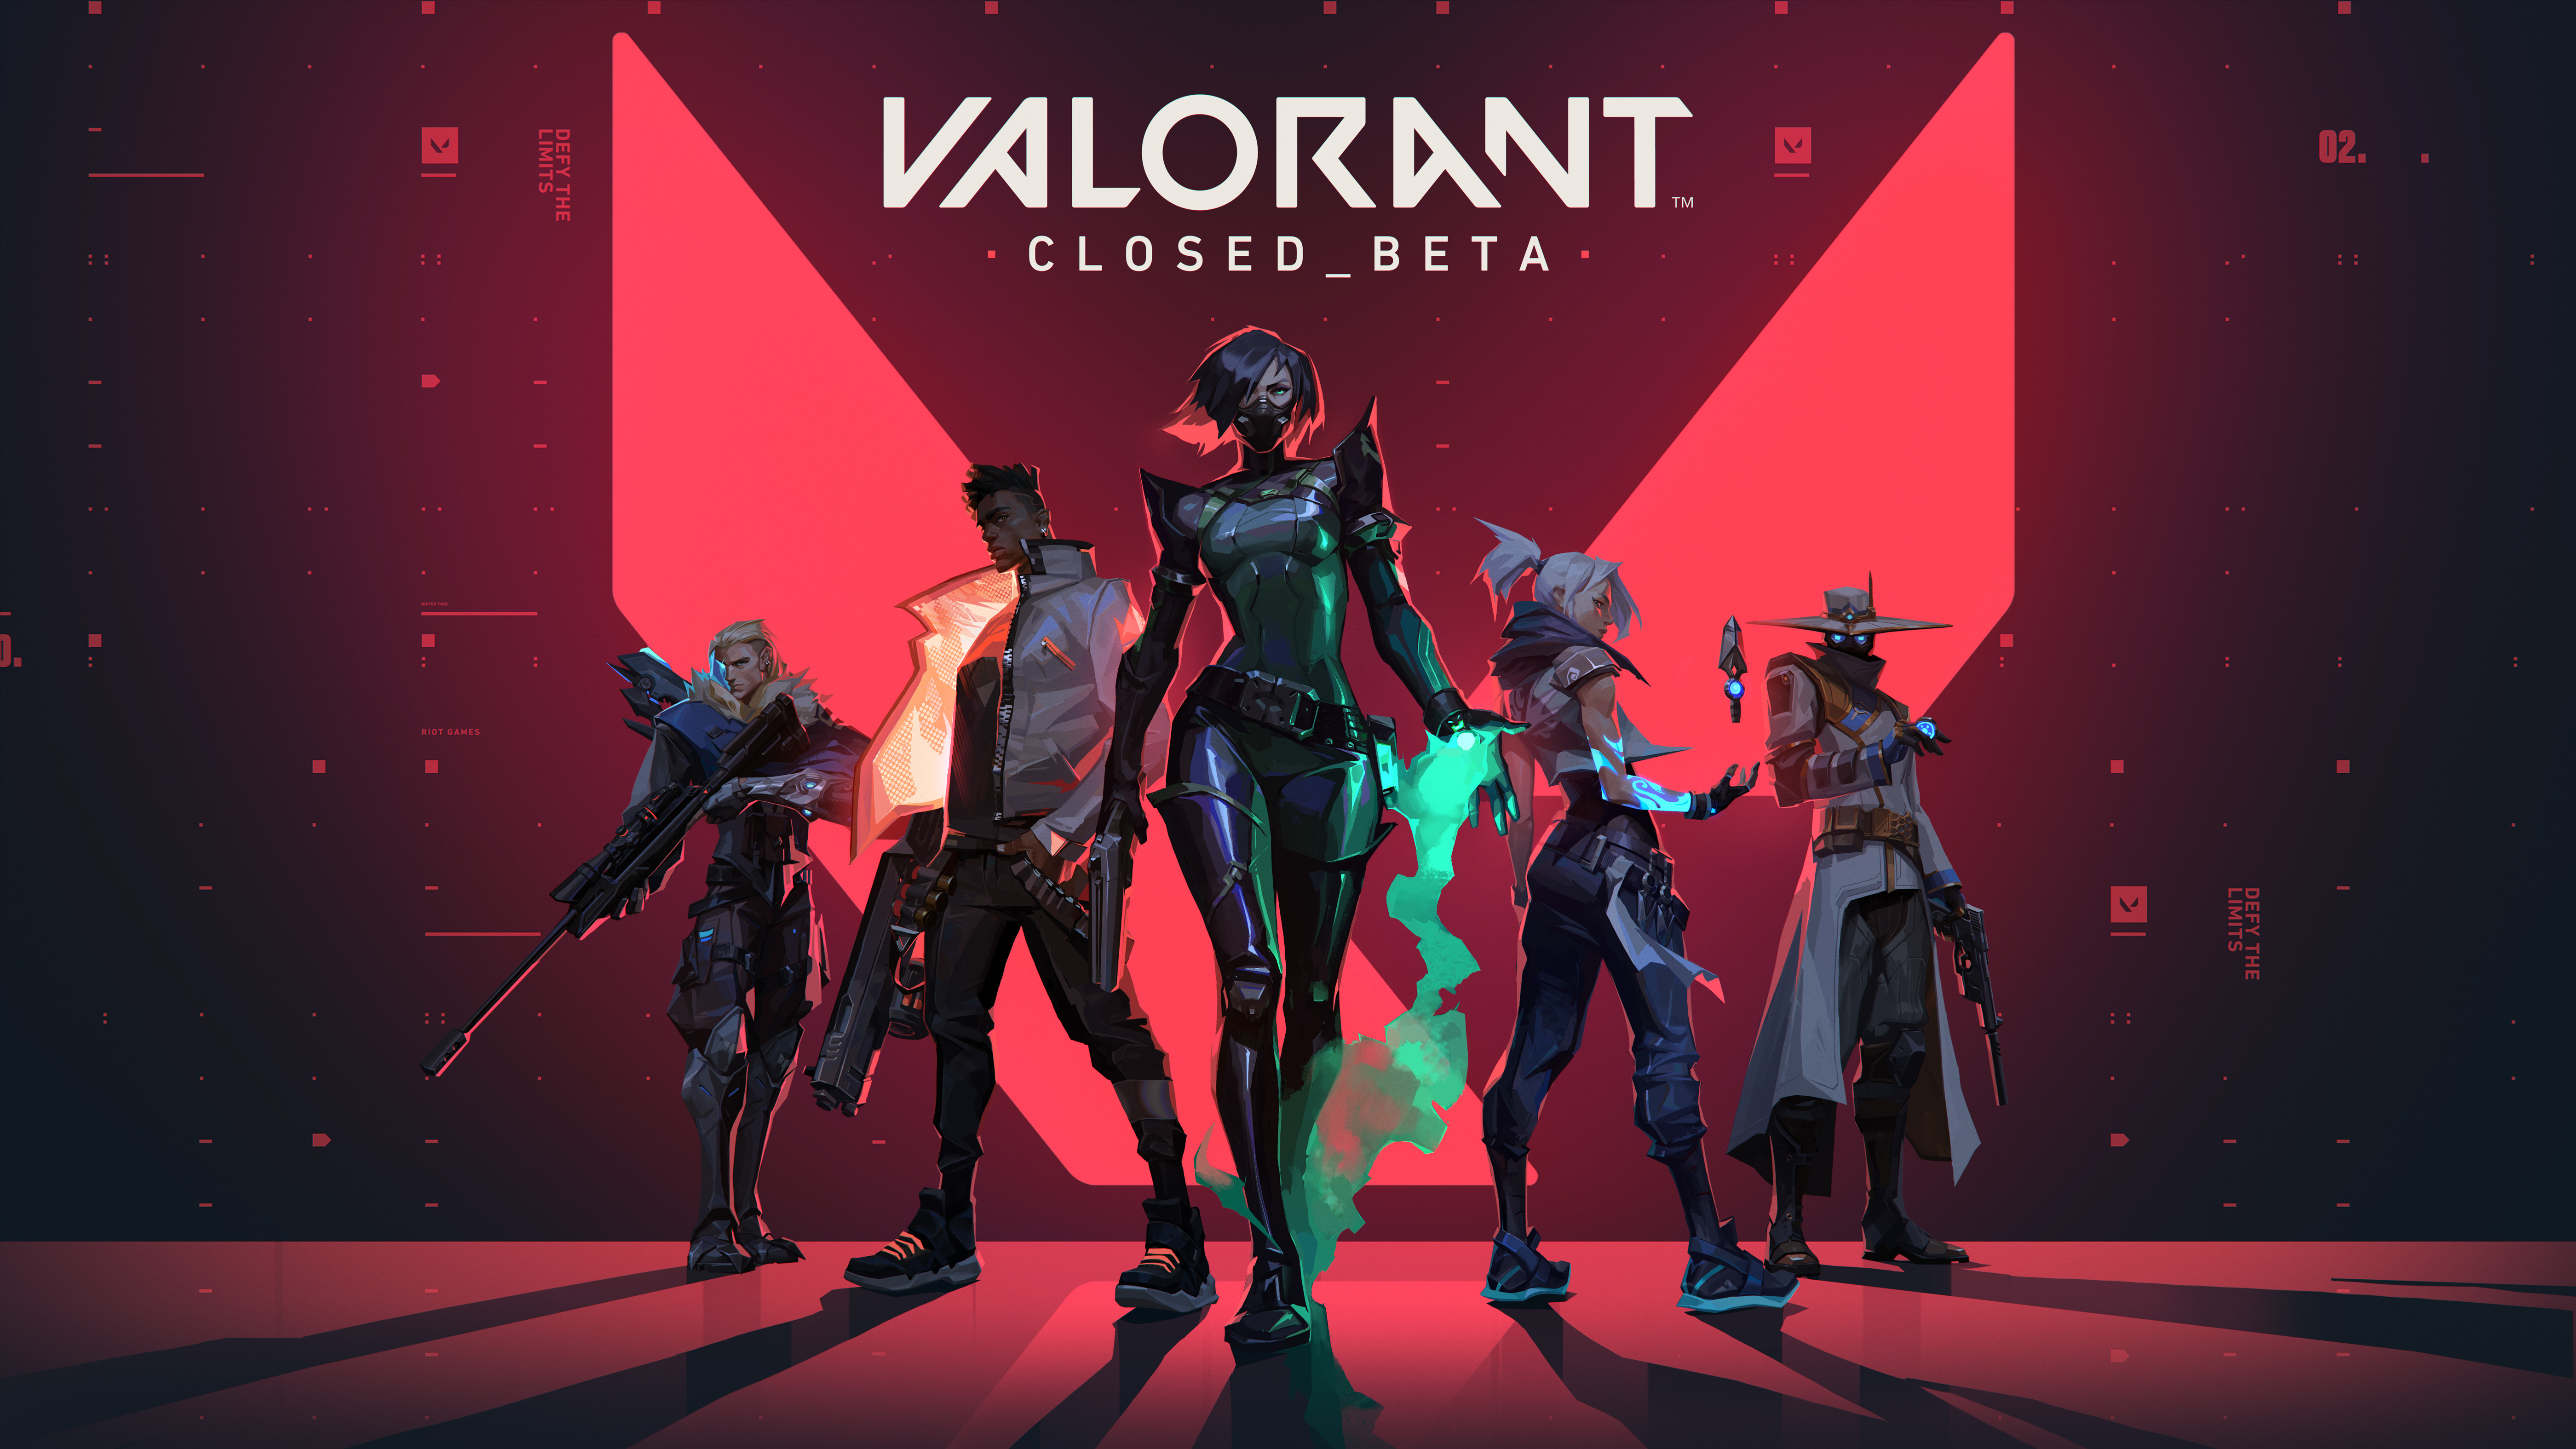 Queues are being disabled in VALORANT closed beta